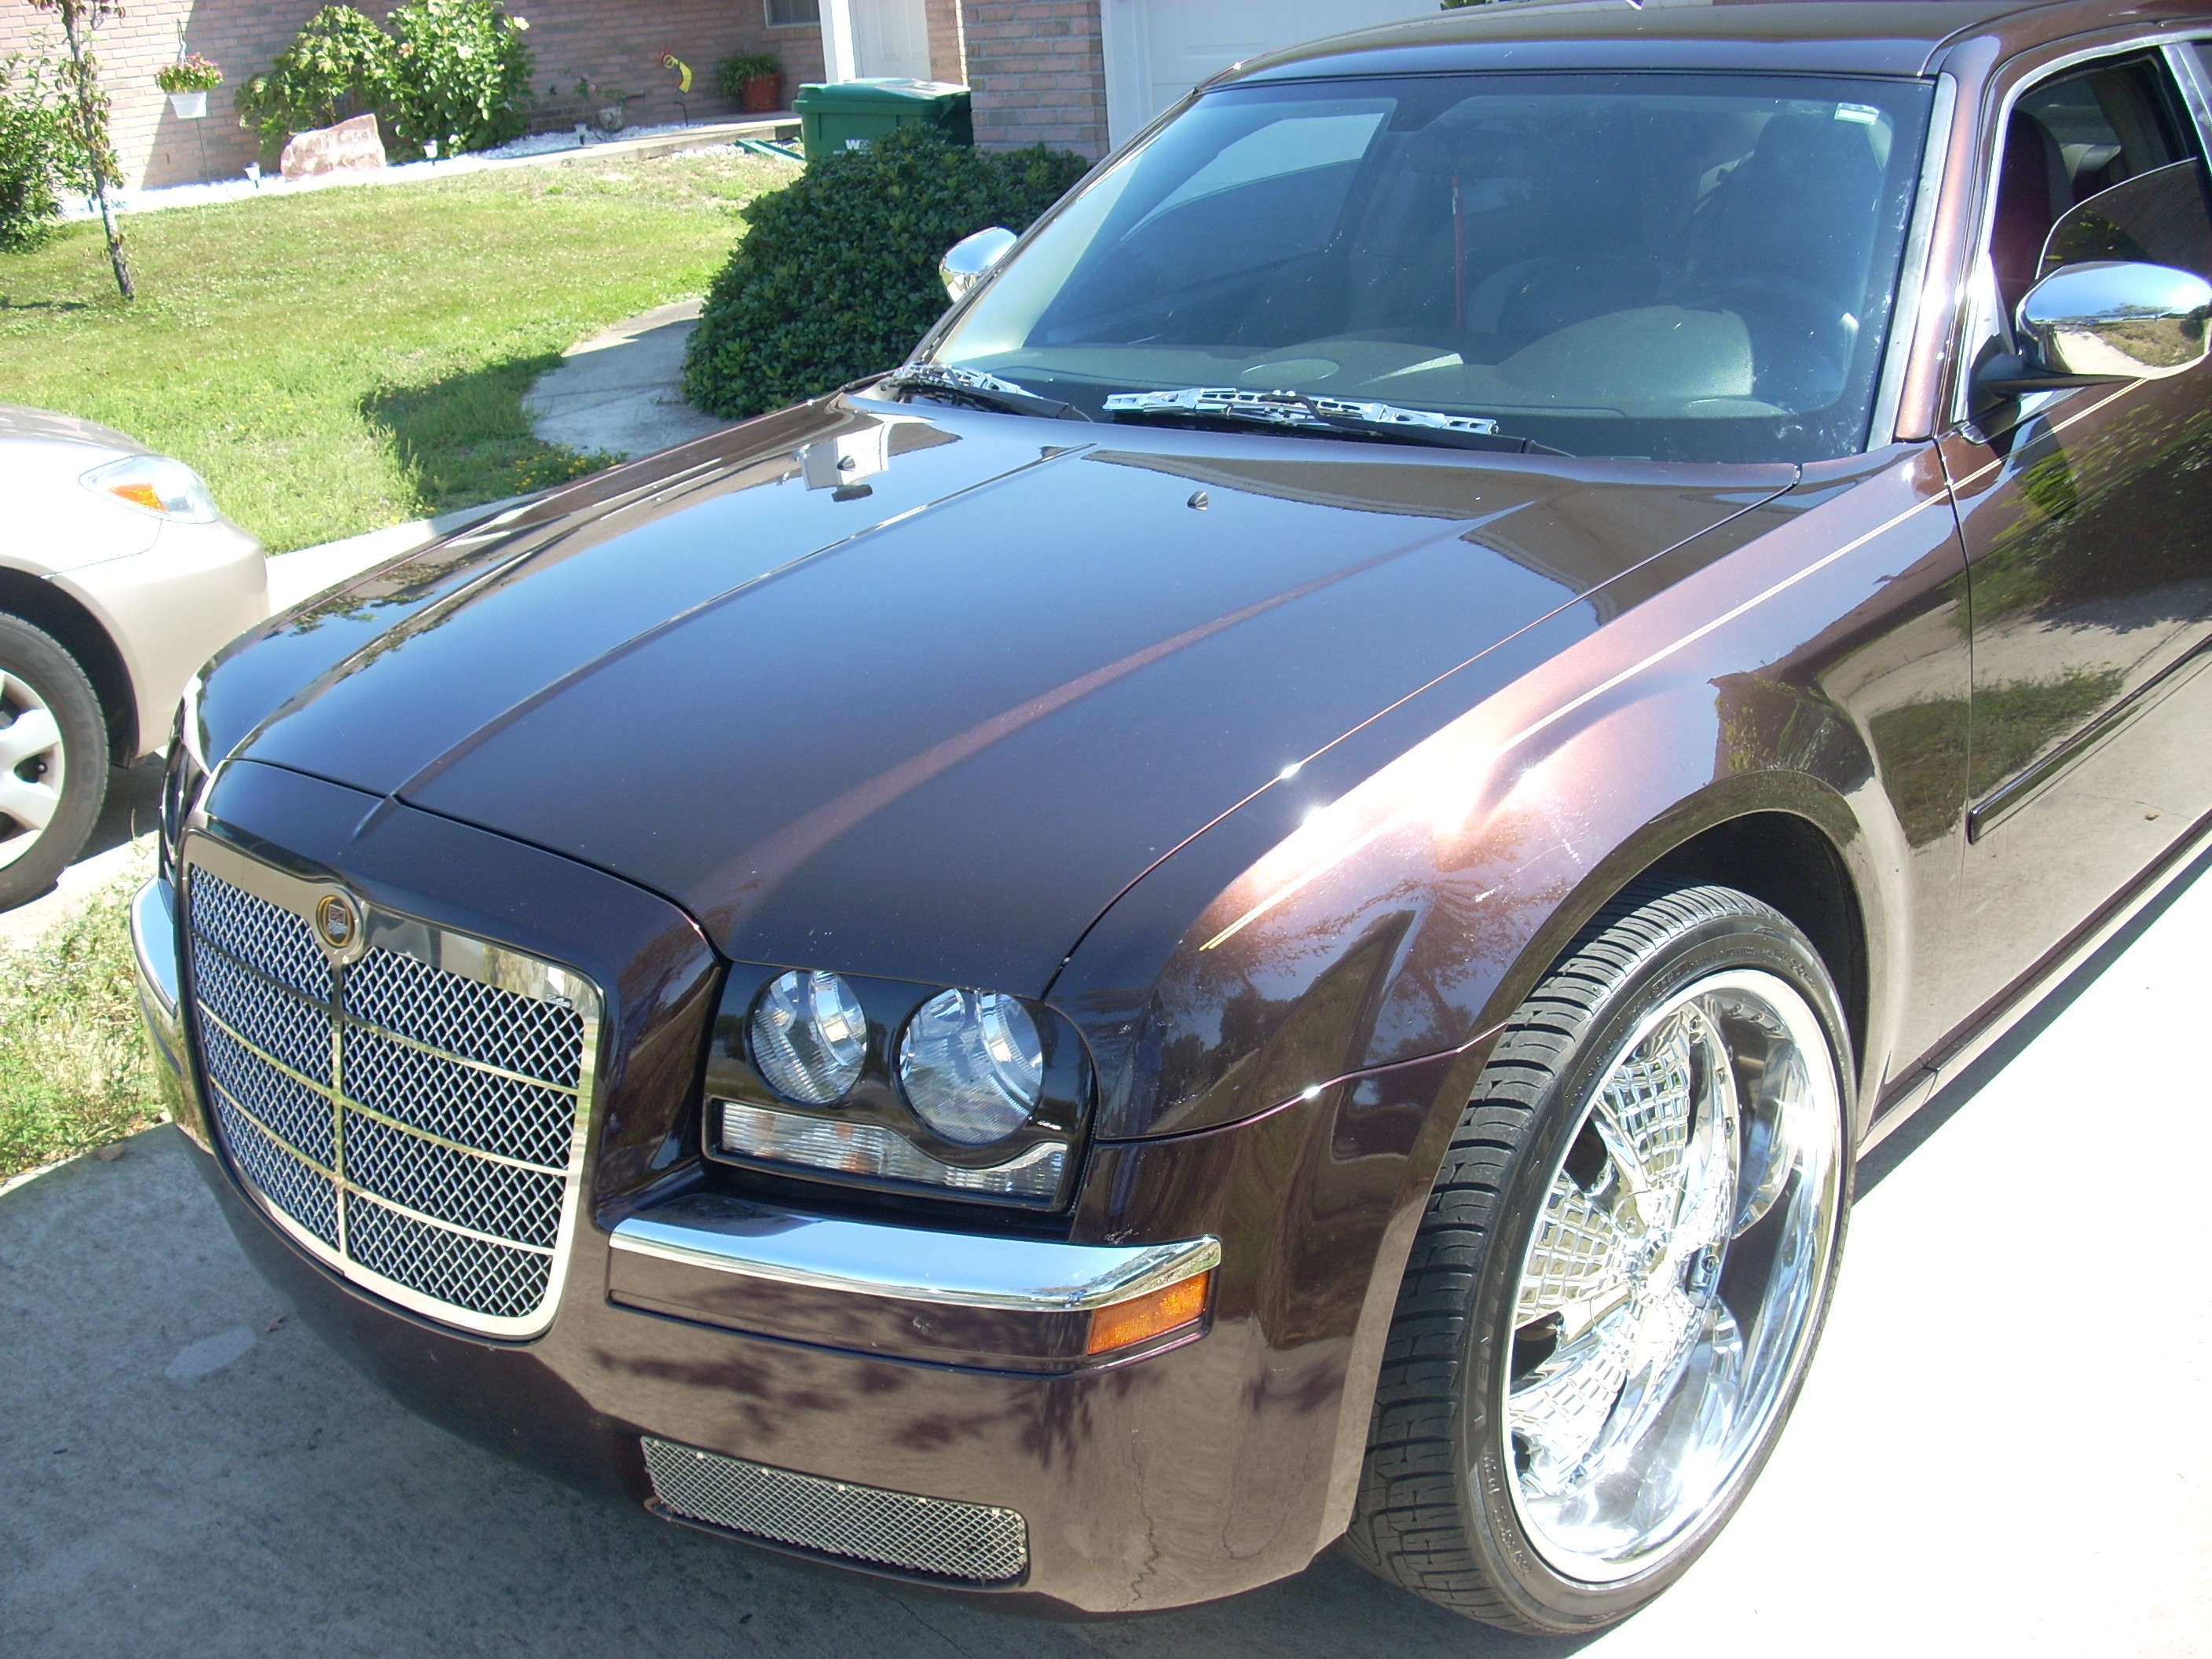 Manny_World 2005 Chrysler 300 14119401